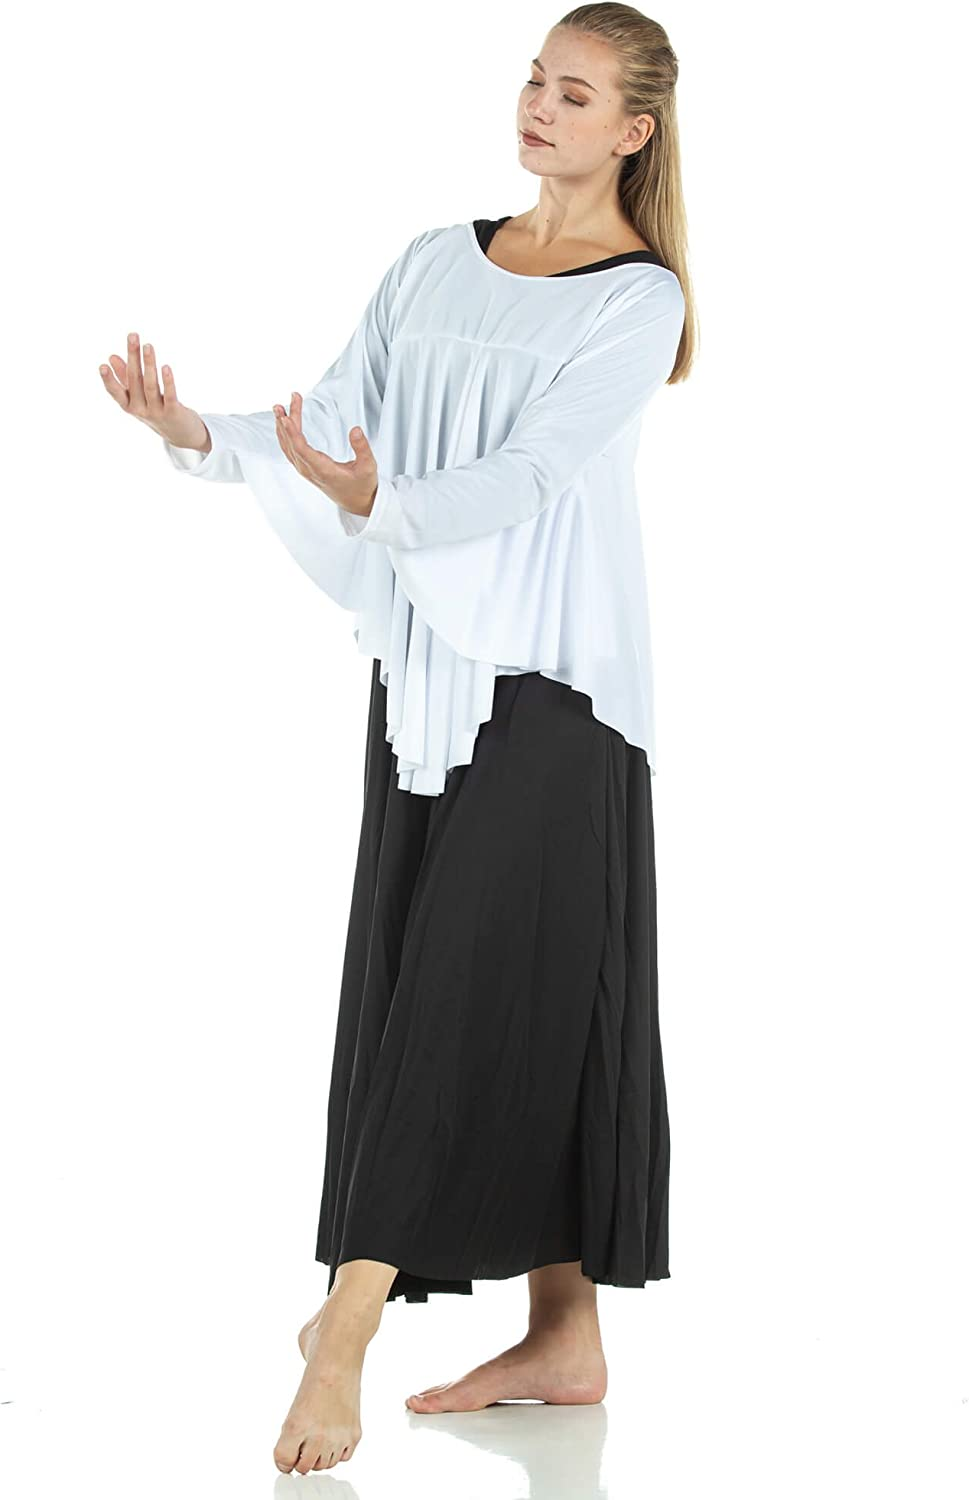 Danzcue Womens Angel Wing Drapey Pullover Dance Top